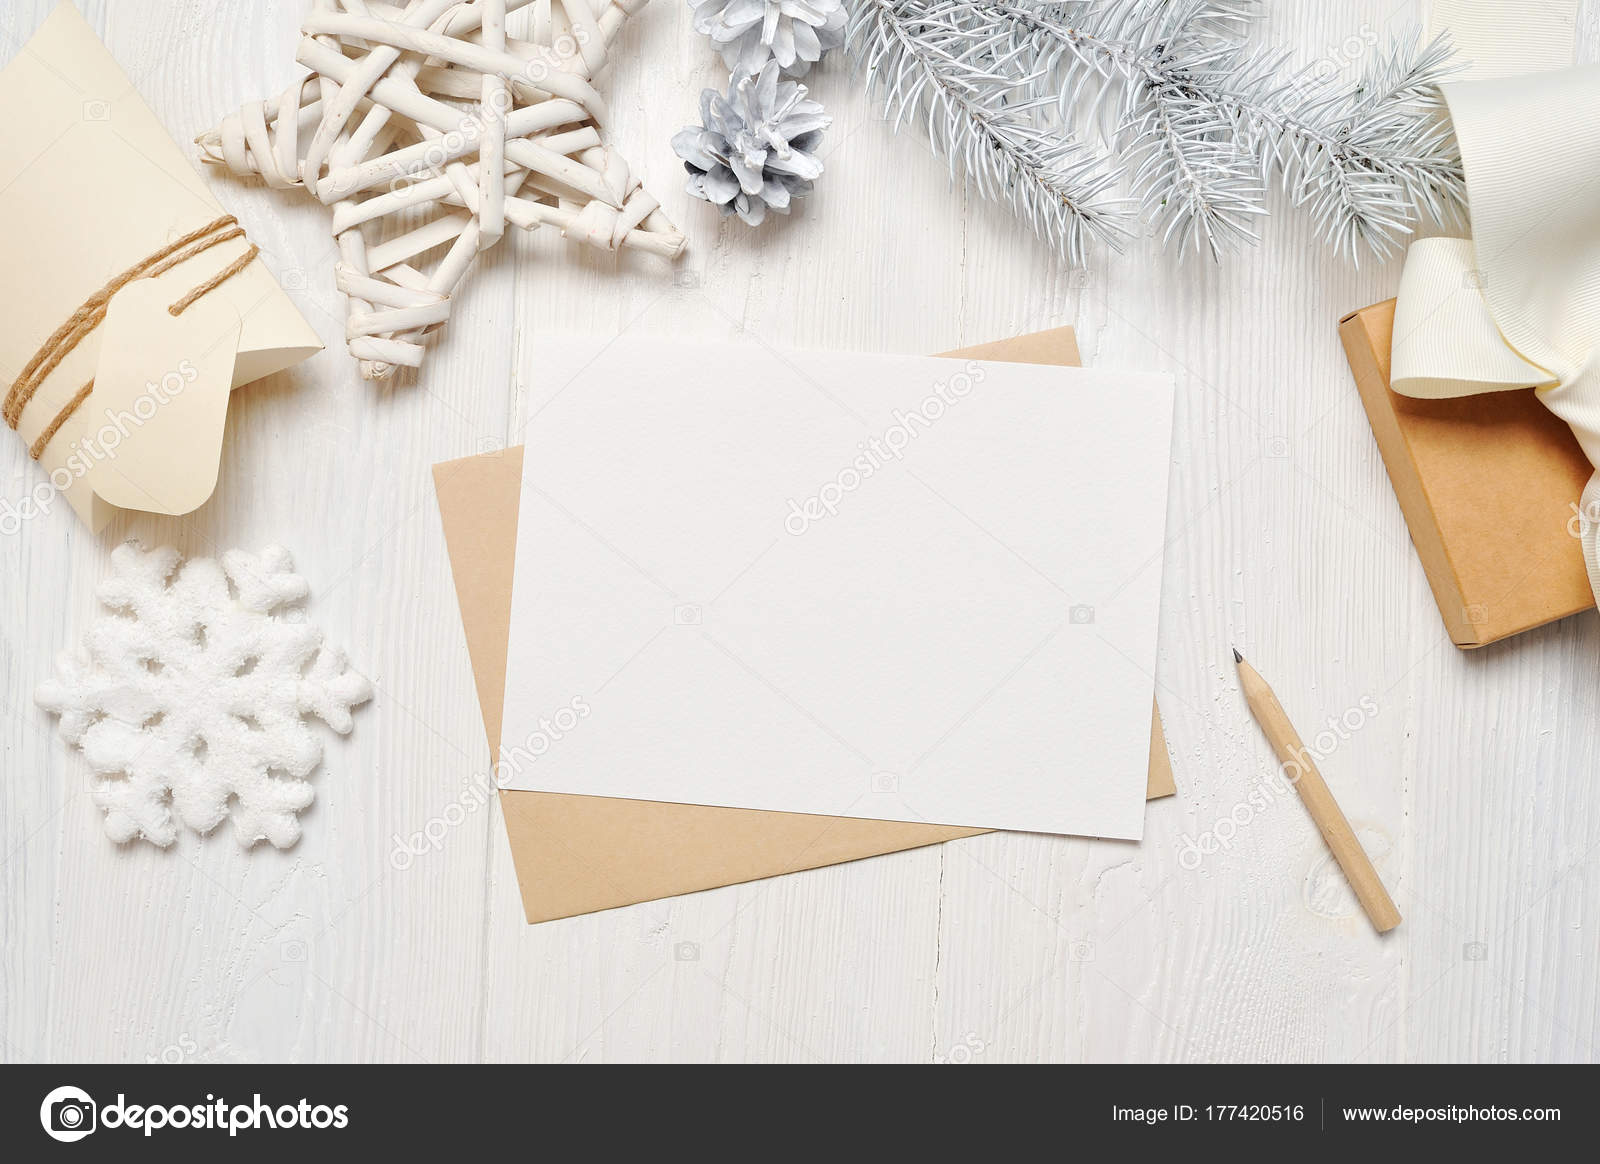 Mockup christmas greeting card letter in envelope with white tree mockup christmas greeting card letter in envelope with white tree flatlay on a white wooden m4hsunfo